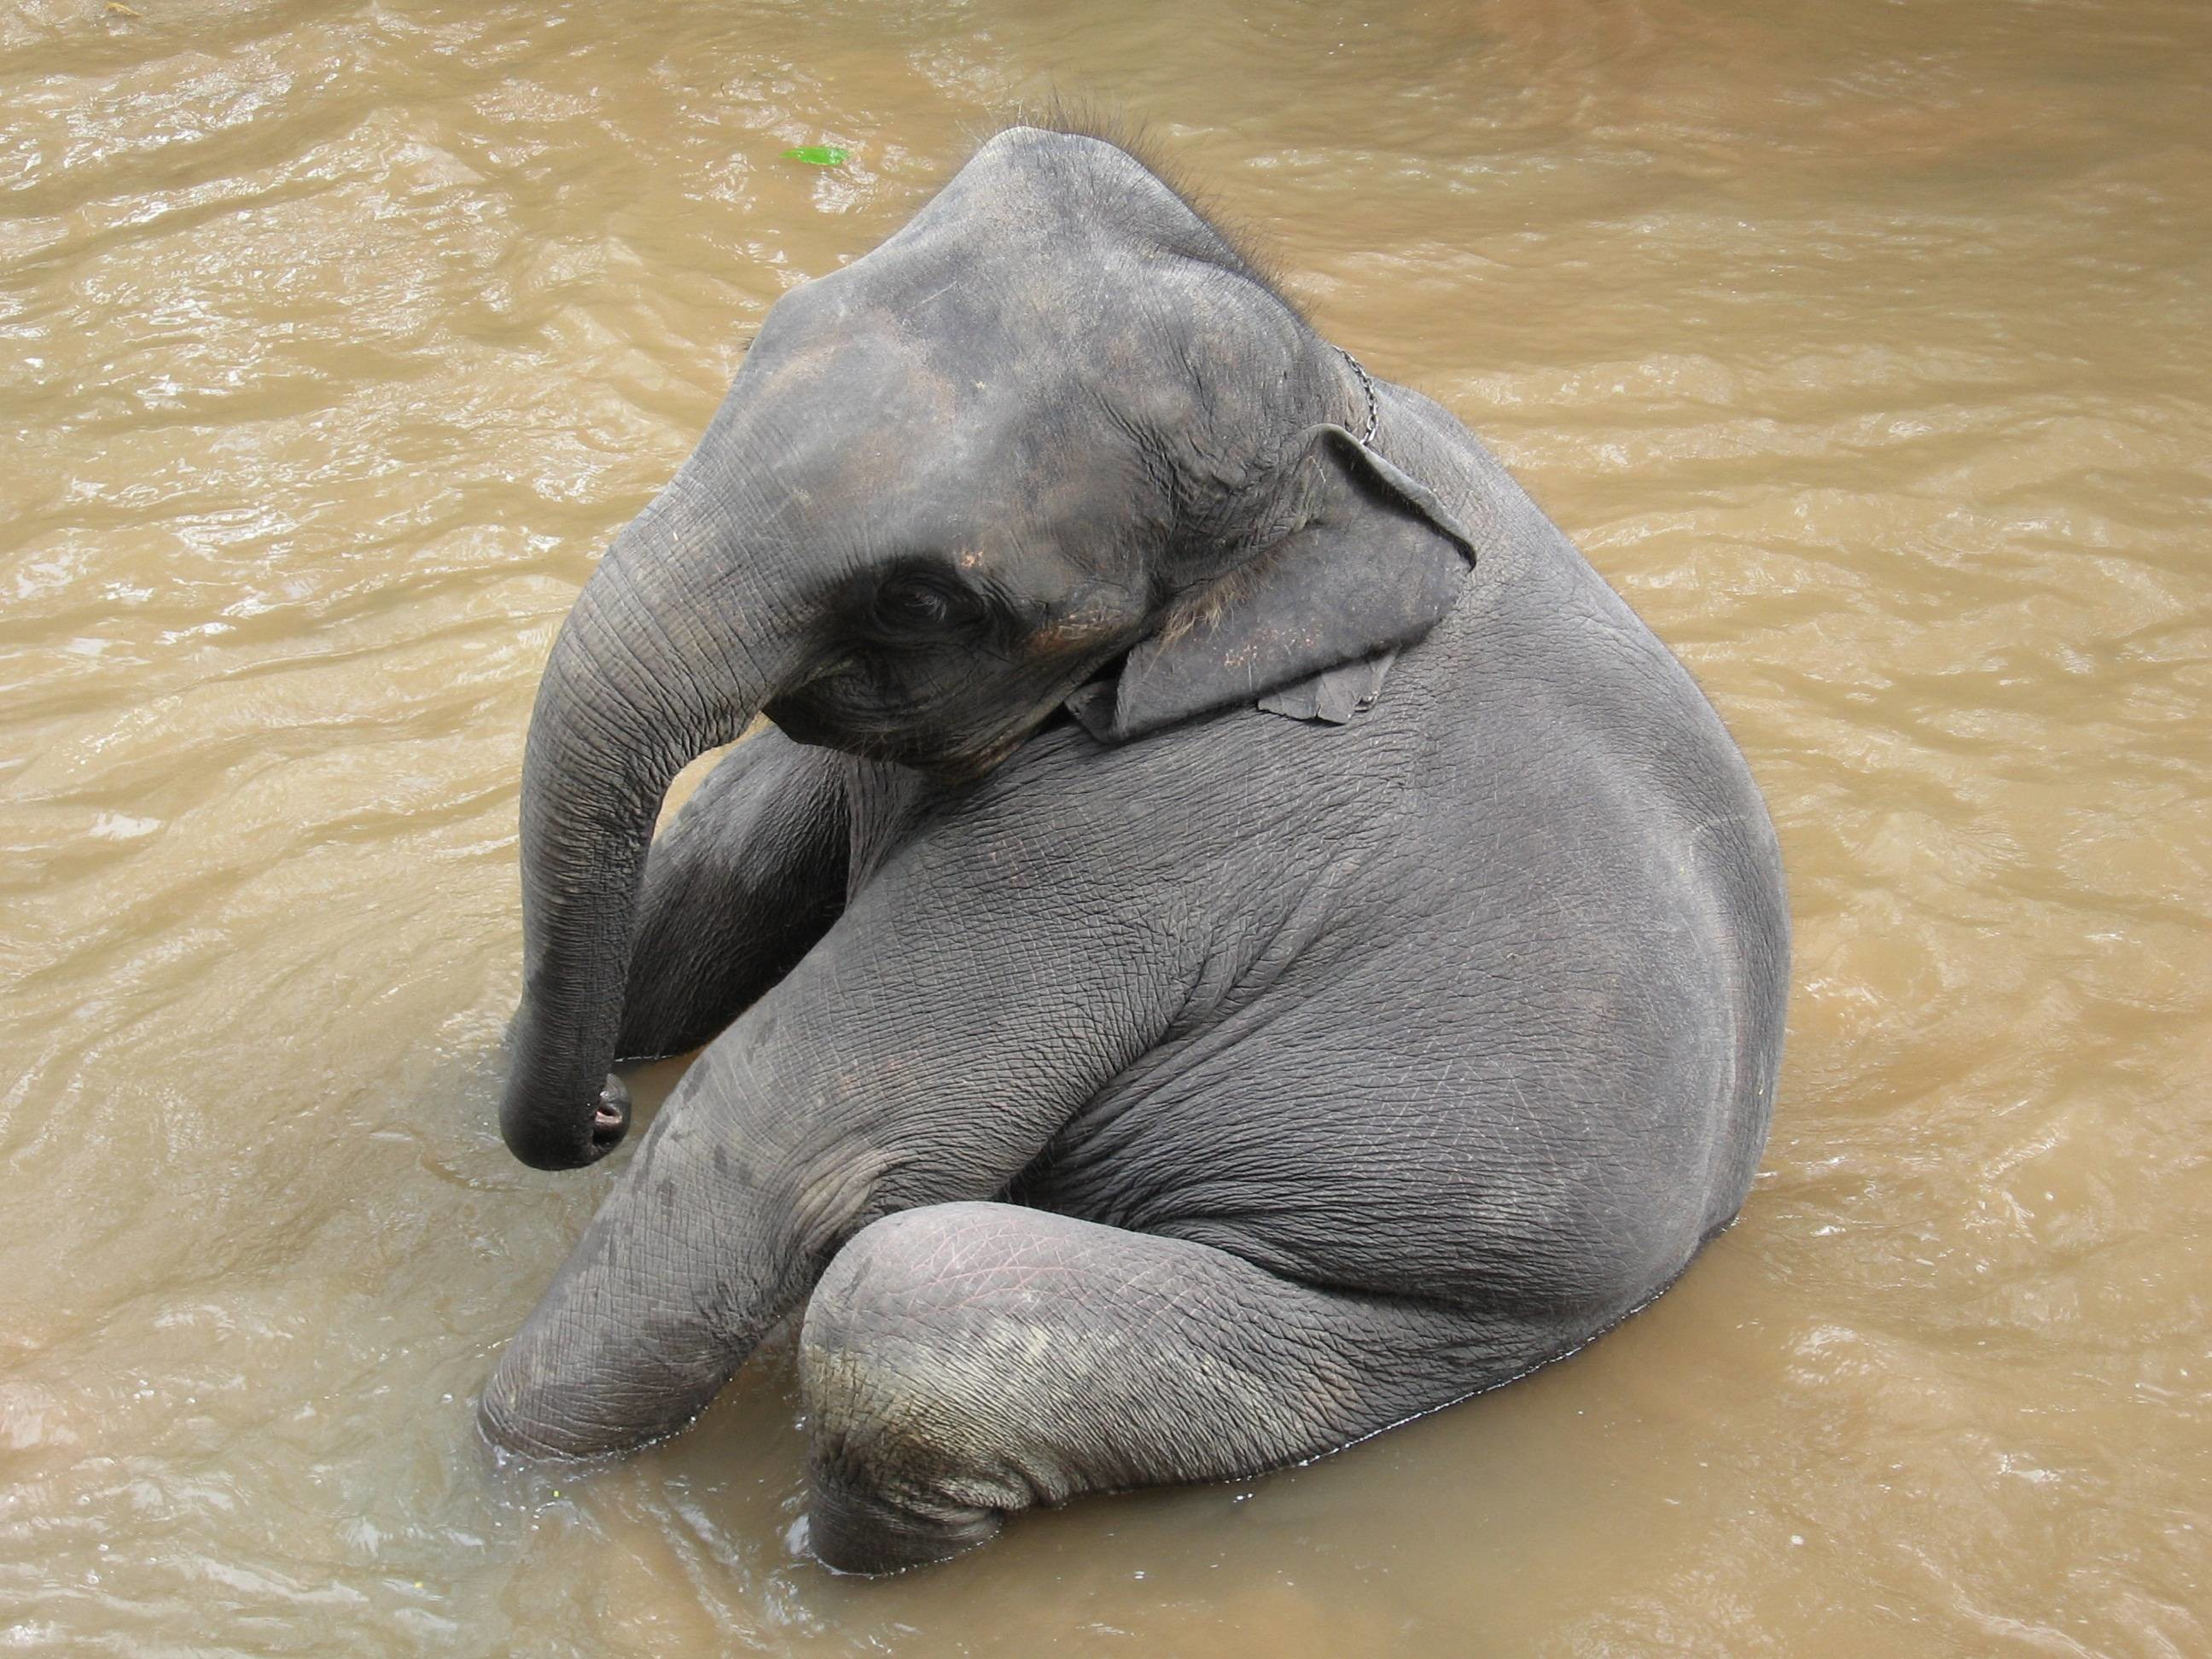 Res: 2592x1944, Elephant HD Wallpapers | Elephant Desktop Wallpapers | Cool Wallpapers